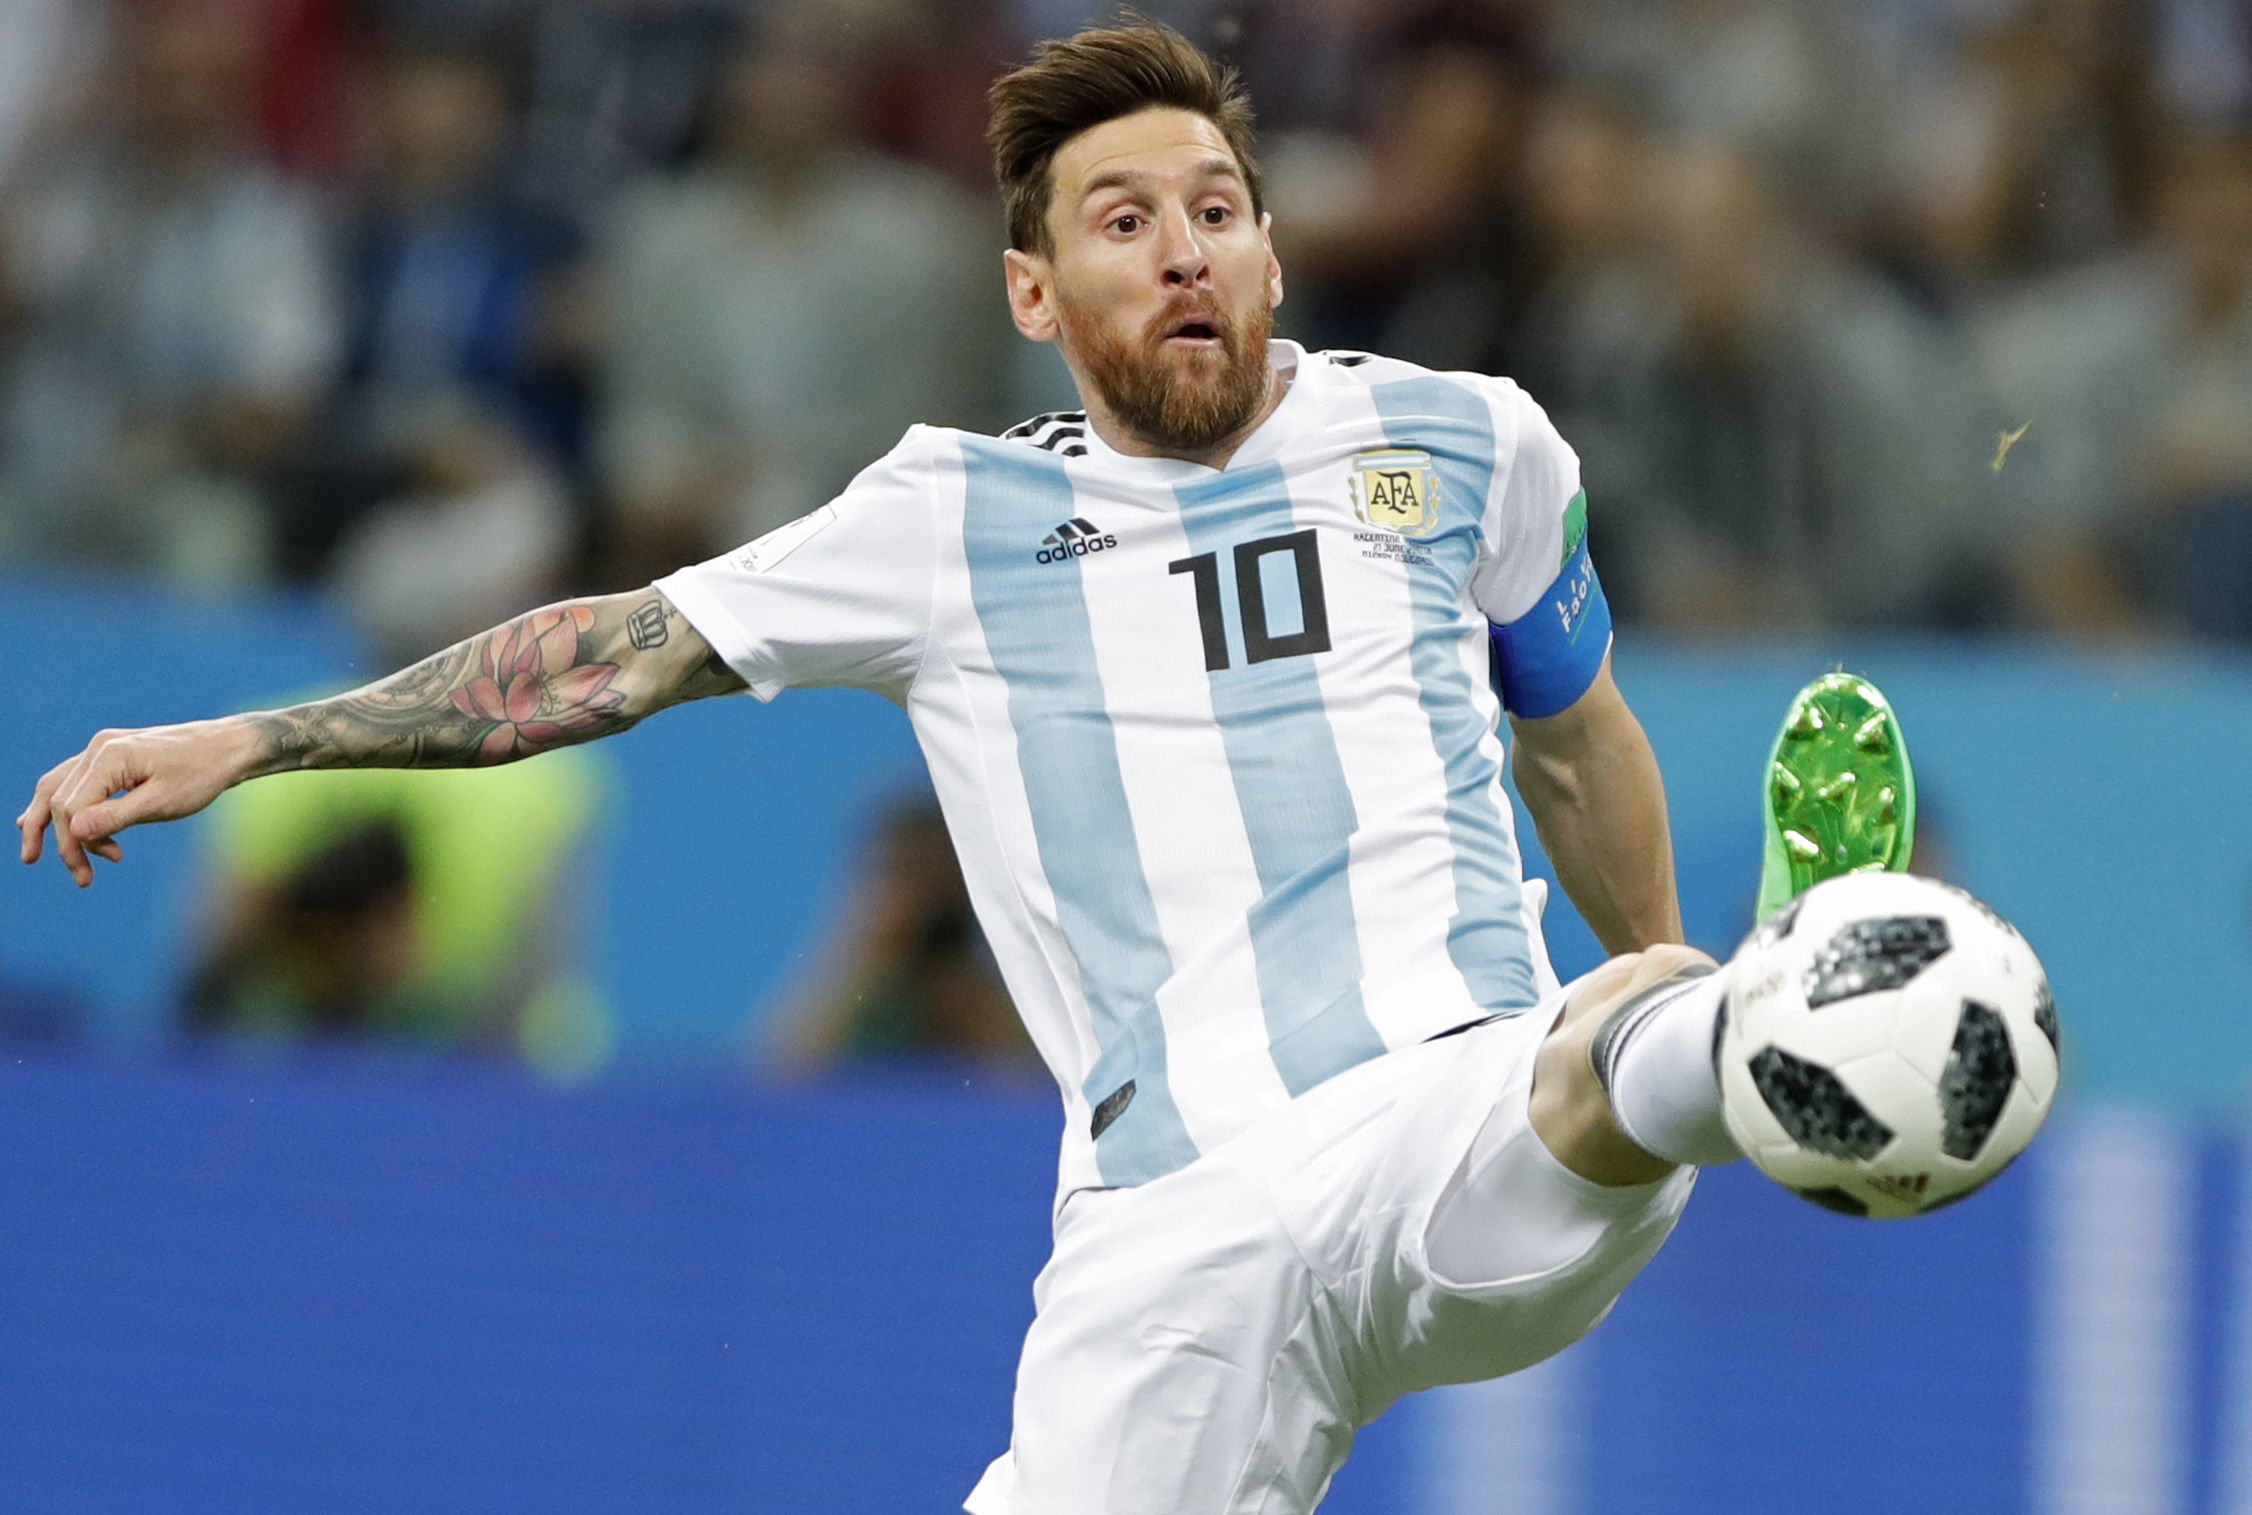 "<div class=""meta image-caption""><div class=""origin-logo origin-image none""><span>none</span></div><span class=""caption-text"">Argentina's Lionel Messi reaches for the ball during the group D match between Argentina and Croatia  in Nizhny Novgorod Stadium on Thursday, June 21, 2018. (Ricardo Mazalan/AP Photo)</span></div>"